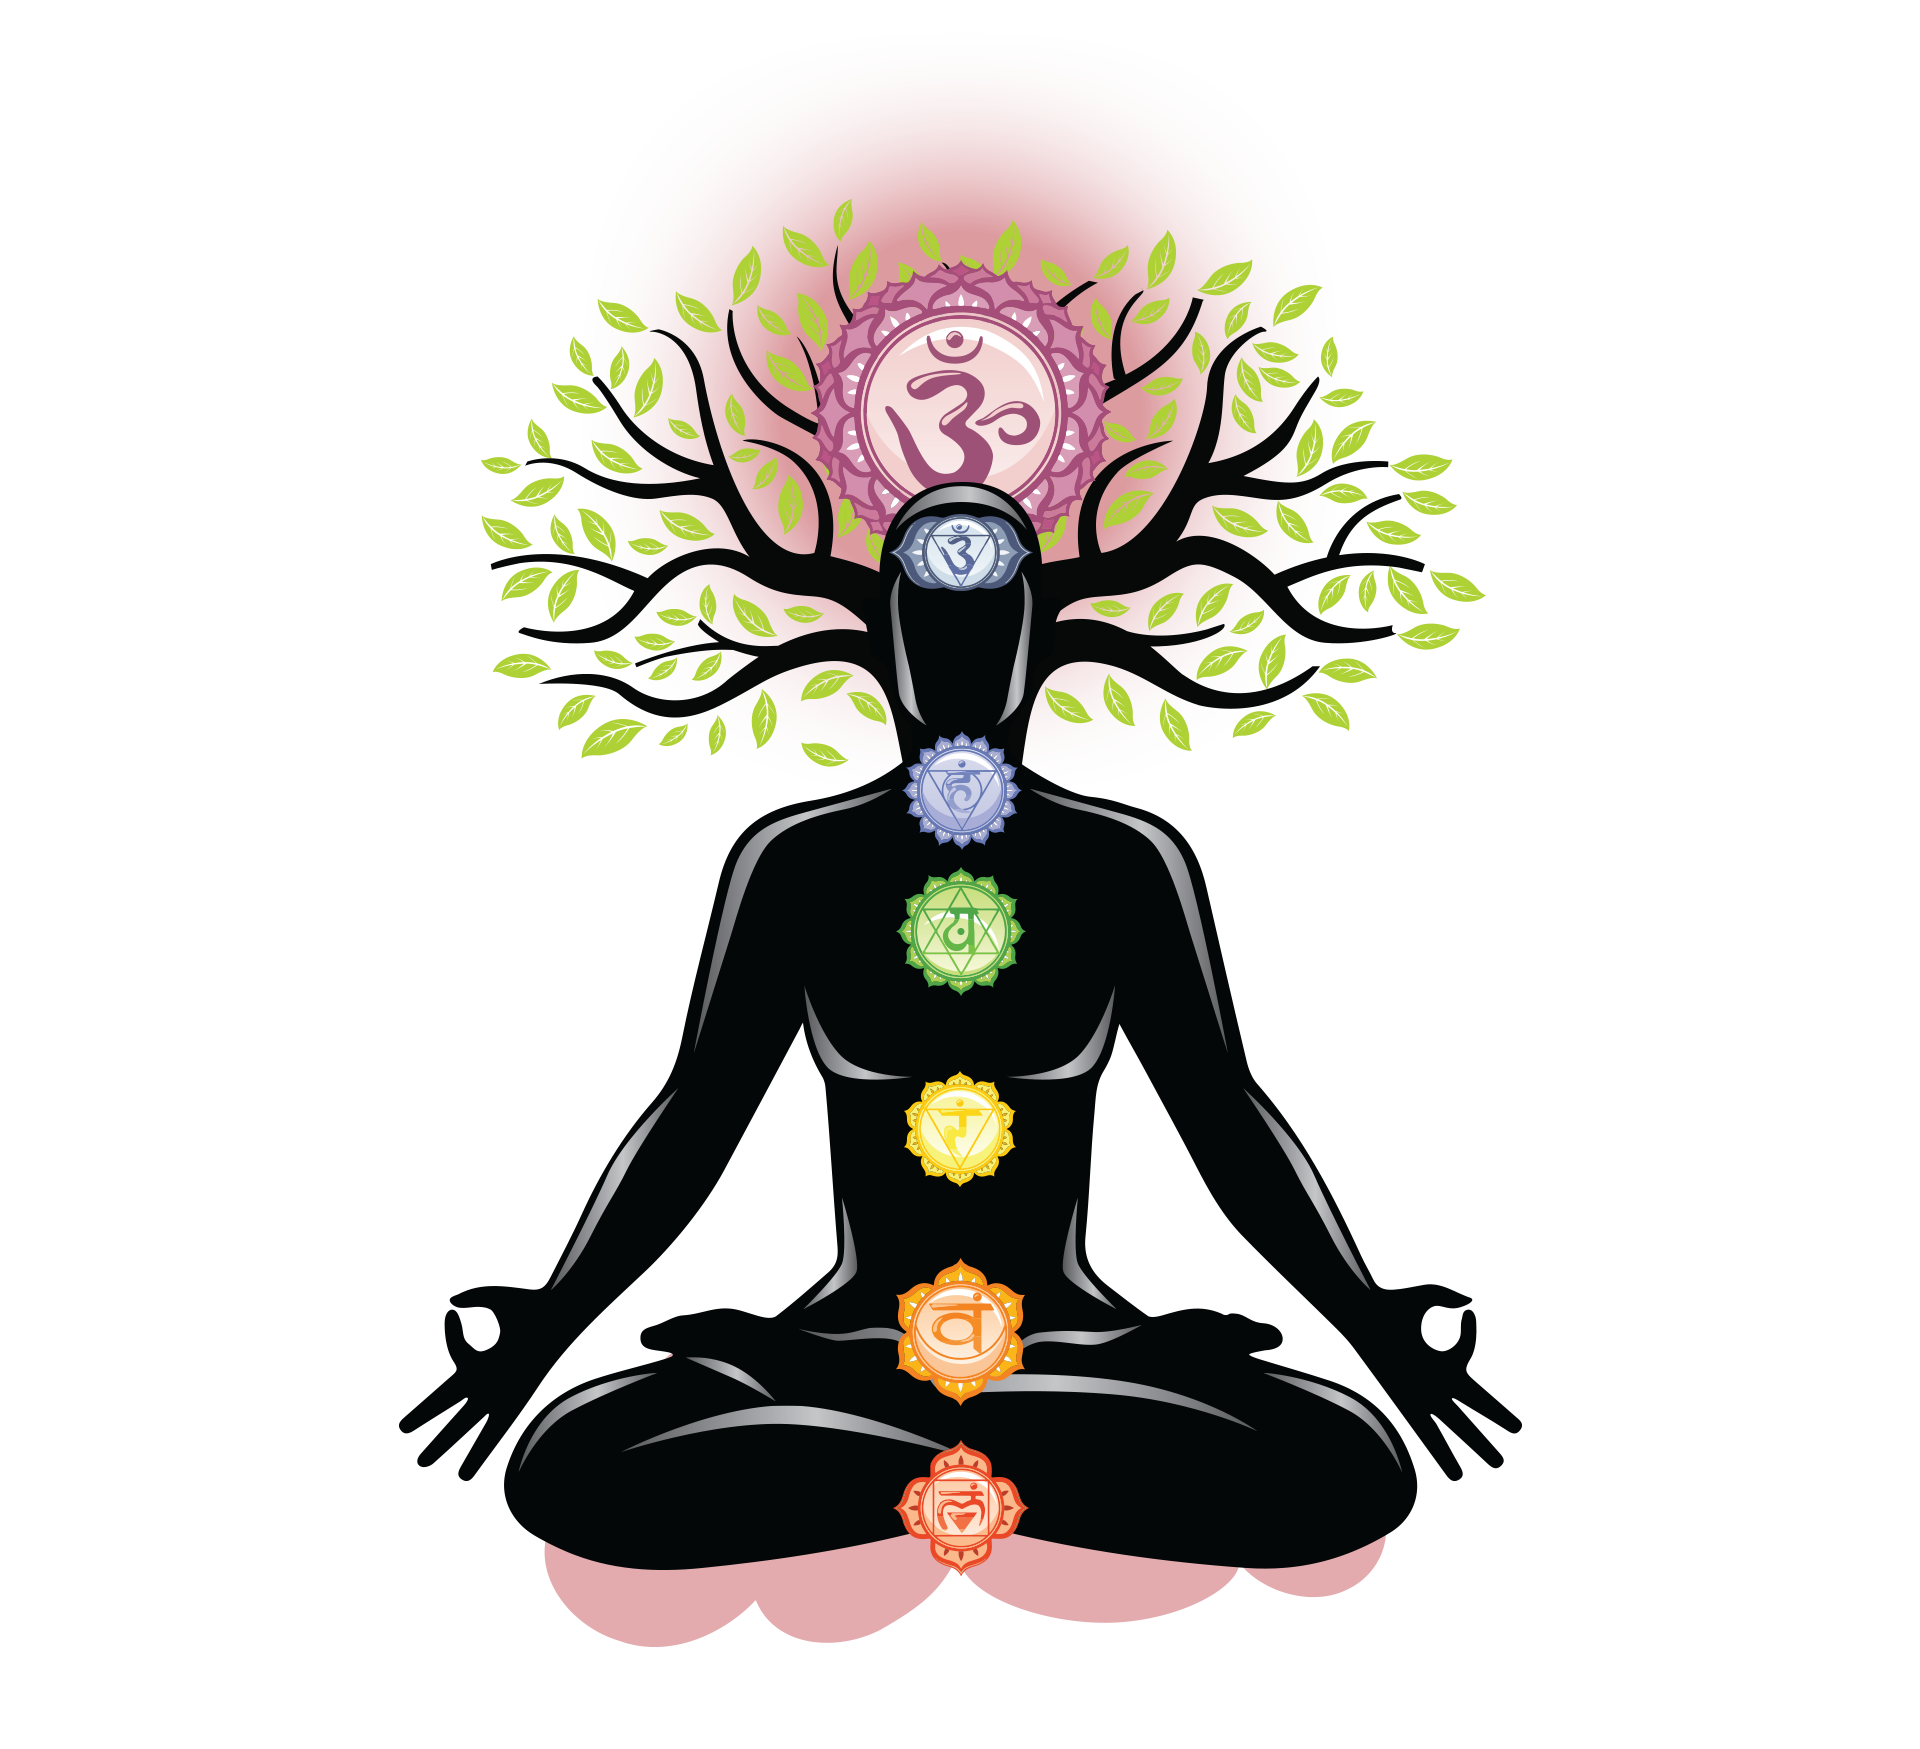 Clipart spirituality graphic library stock Meditation clipart spirituality, Meditation spirituality Transparent ... graphic library stock